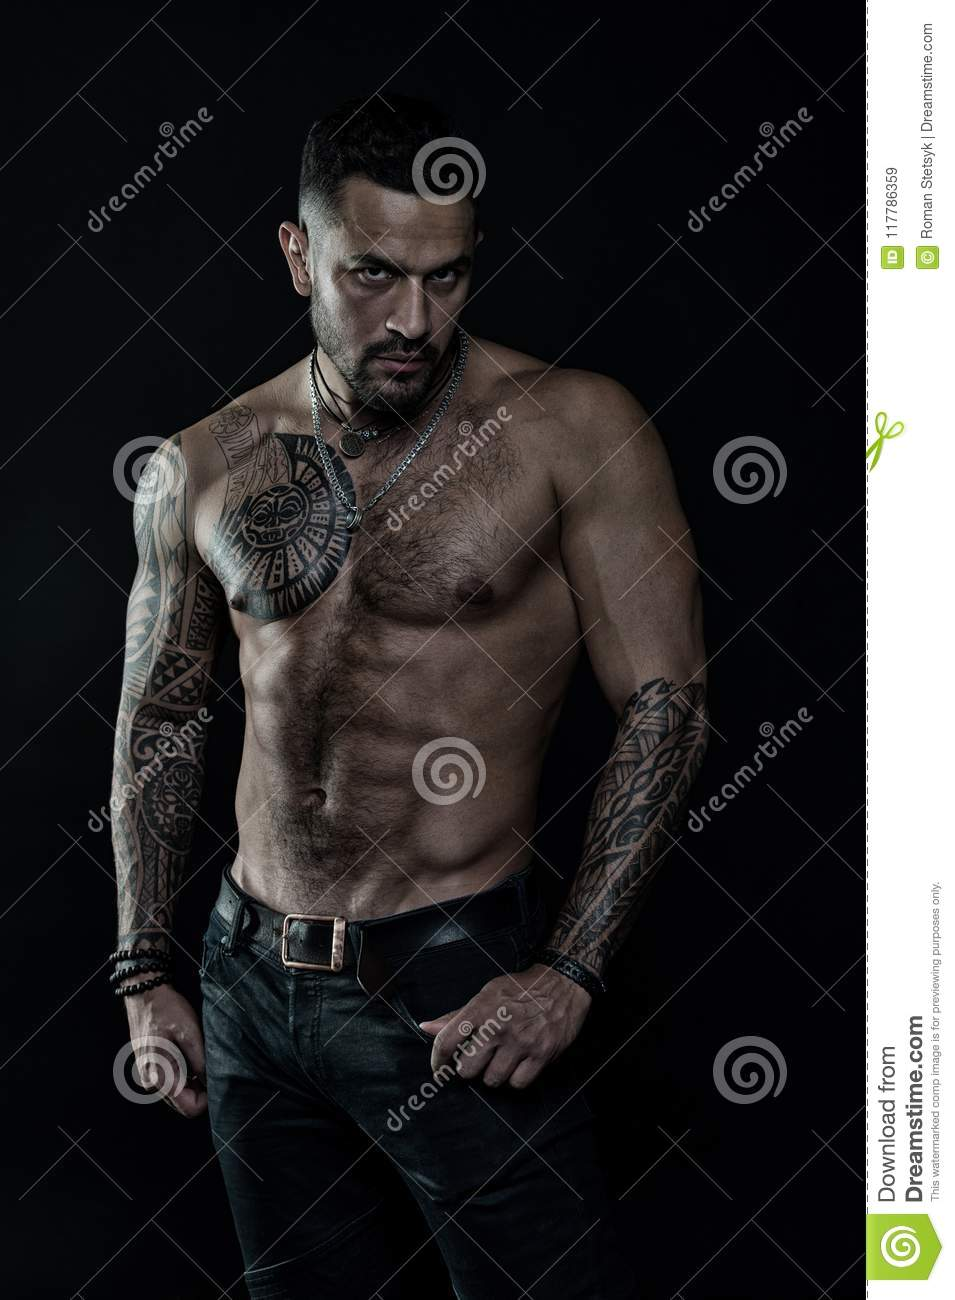 ed0f508cc Tattoo model with six pack and ab. Bearded man with tattooed body. Man with